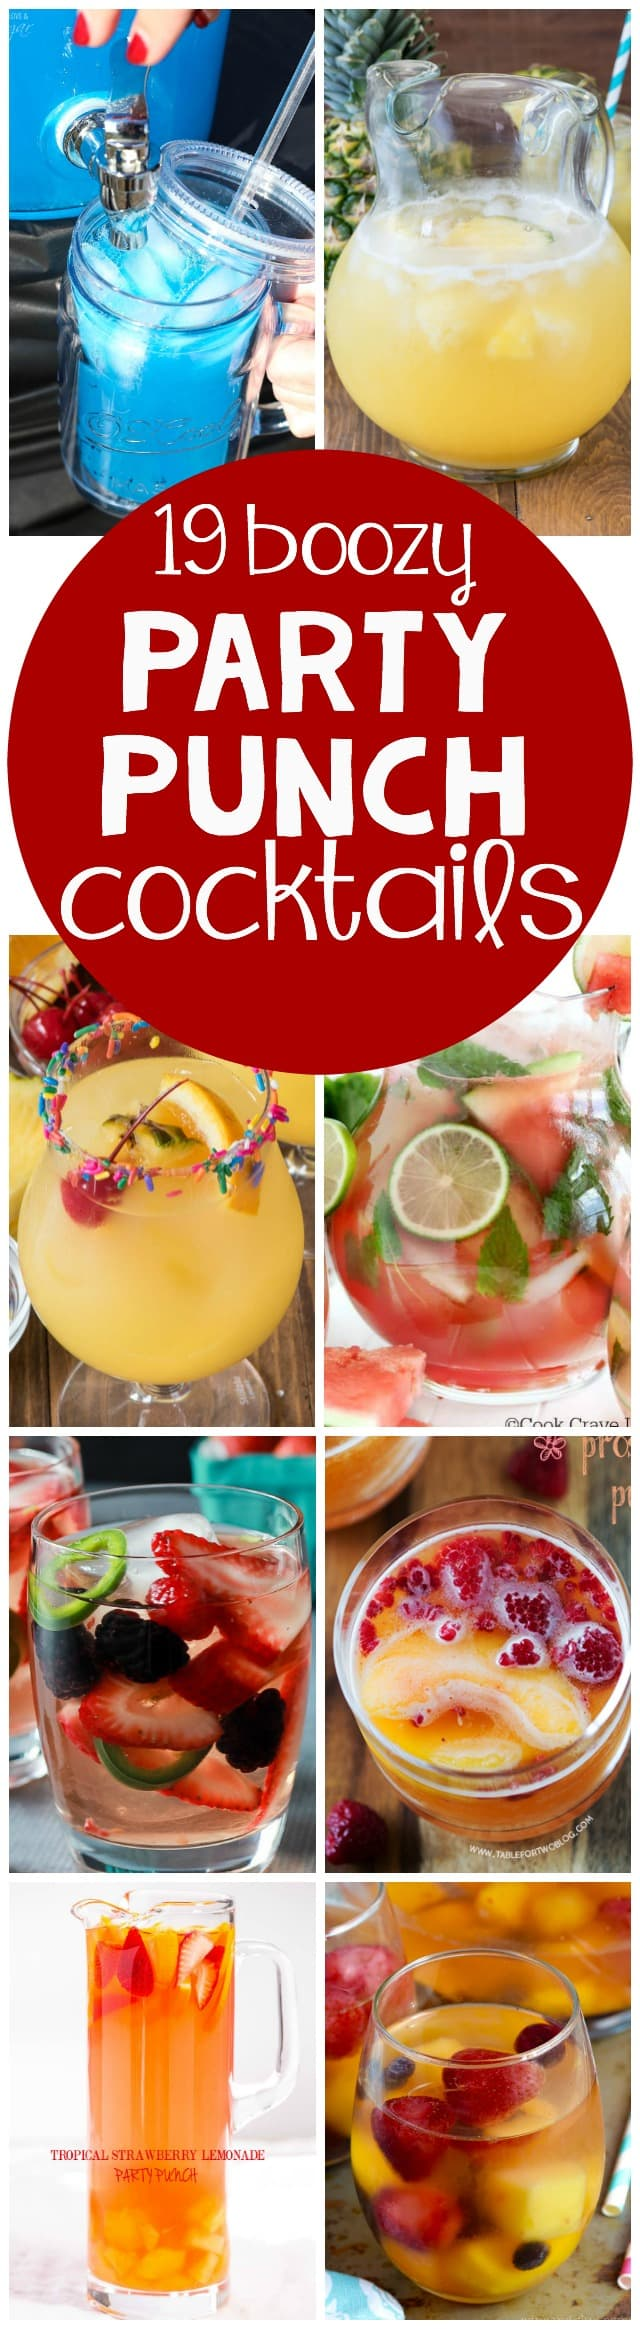 19 party punch cocktail recipes crazy for crust for Easy cocktail recipes for parties